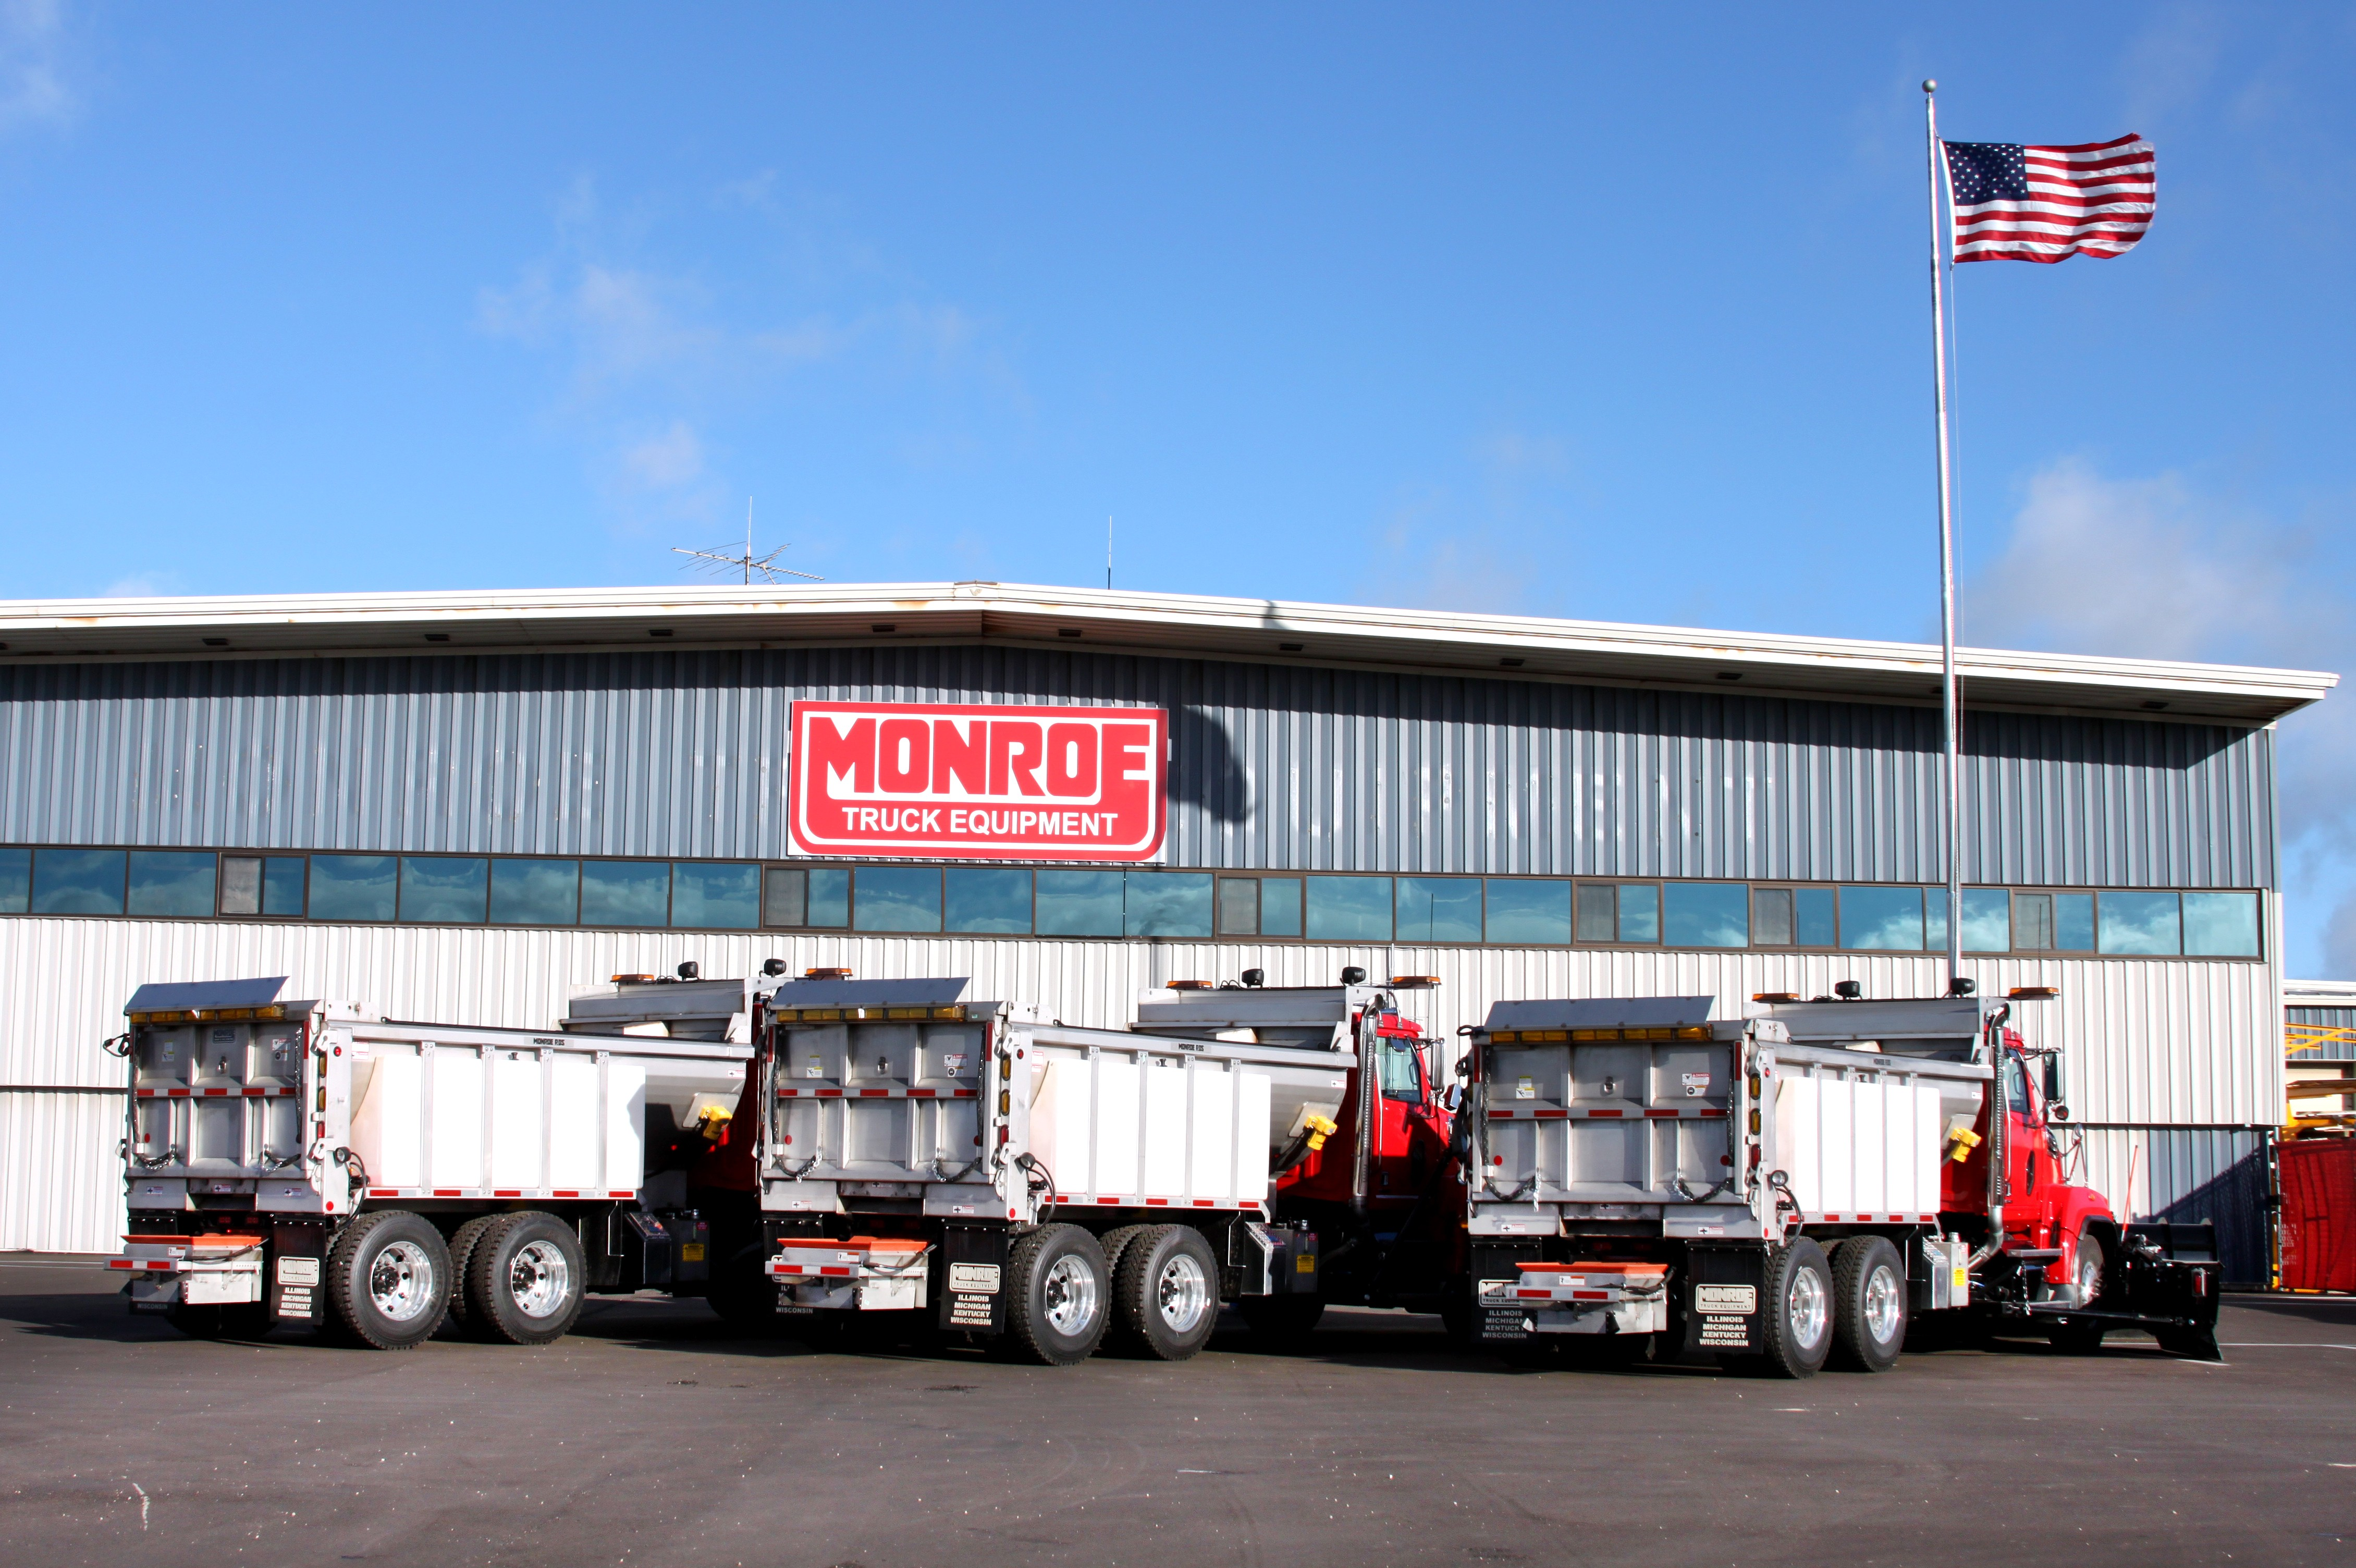 Monroe Truck Equipment >> Monroe Truck Equipment And Modifications Linkedin